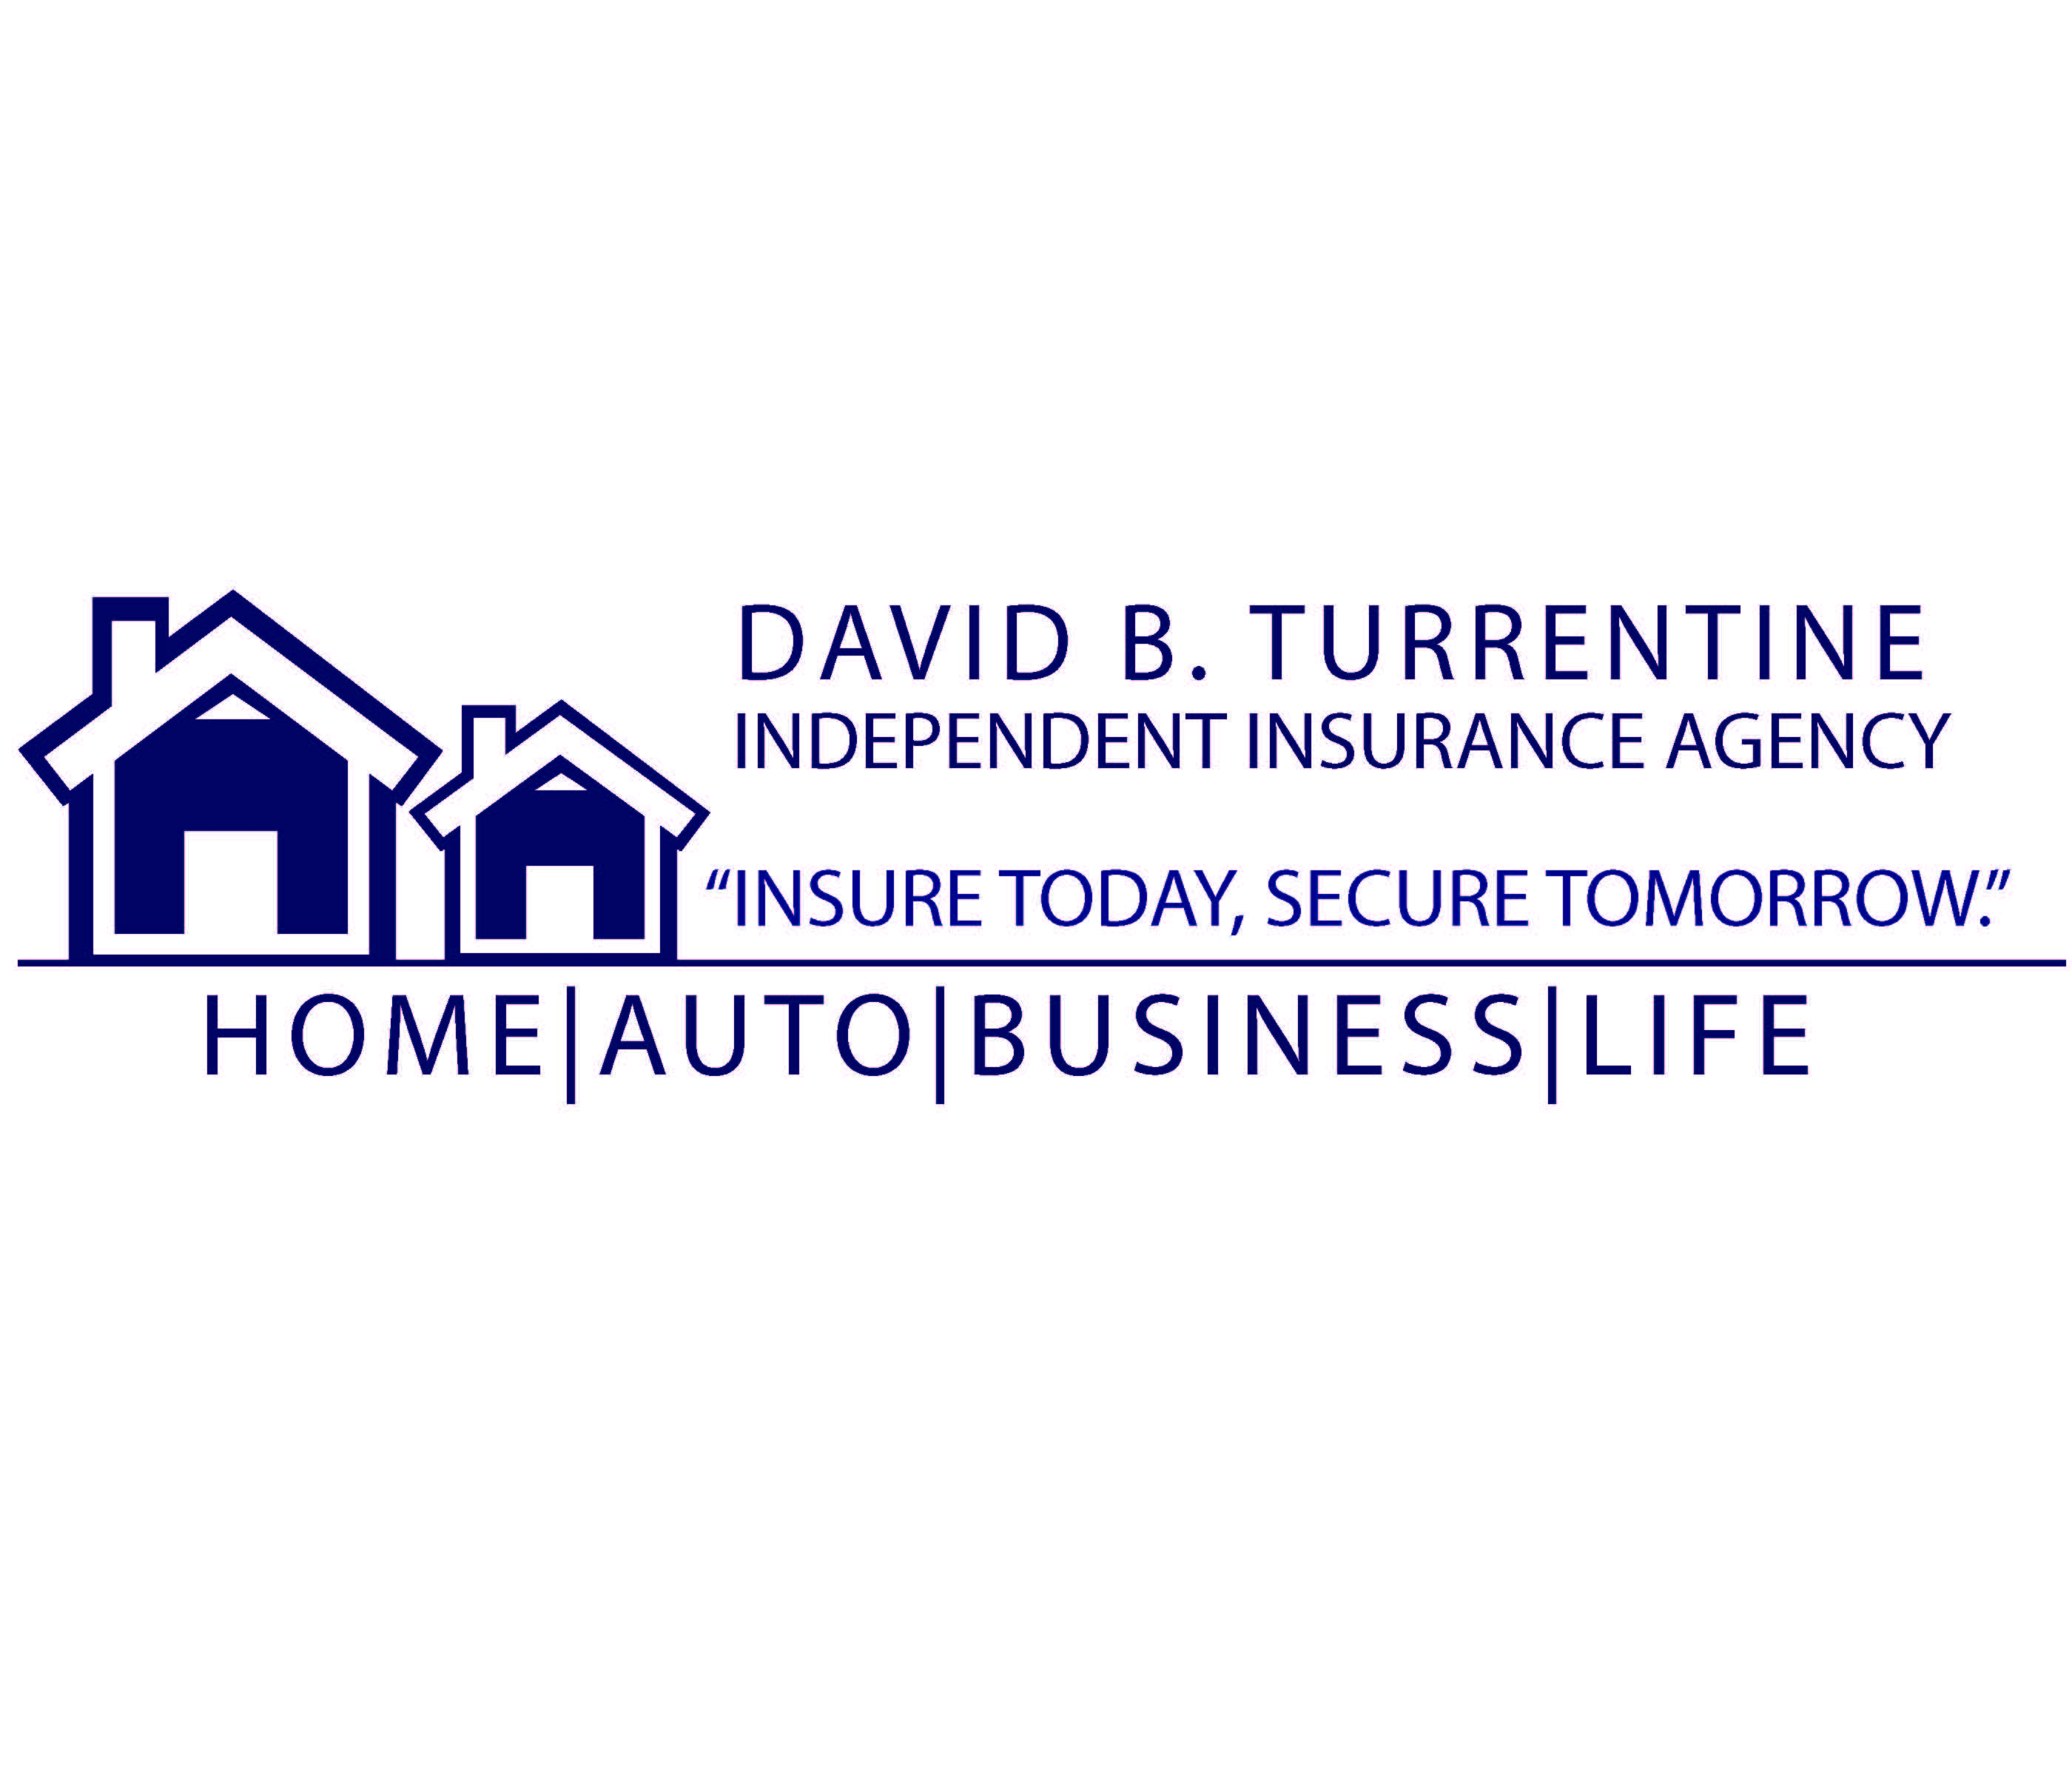 Turrentine Insurance Agency, Deer park, TX - Independent Insurance Agent